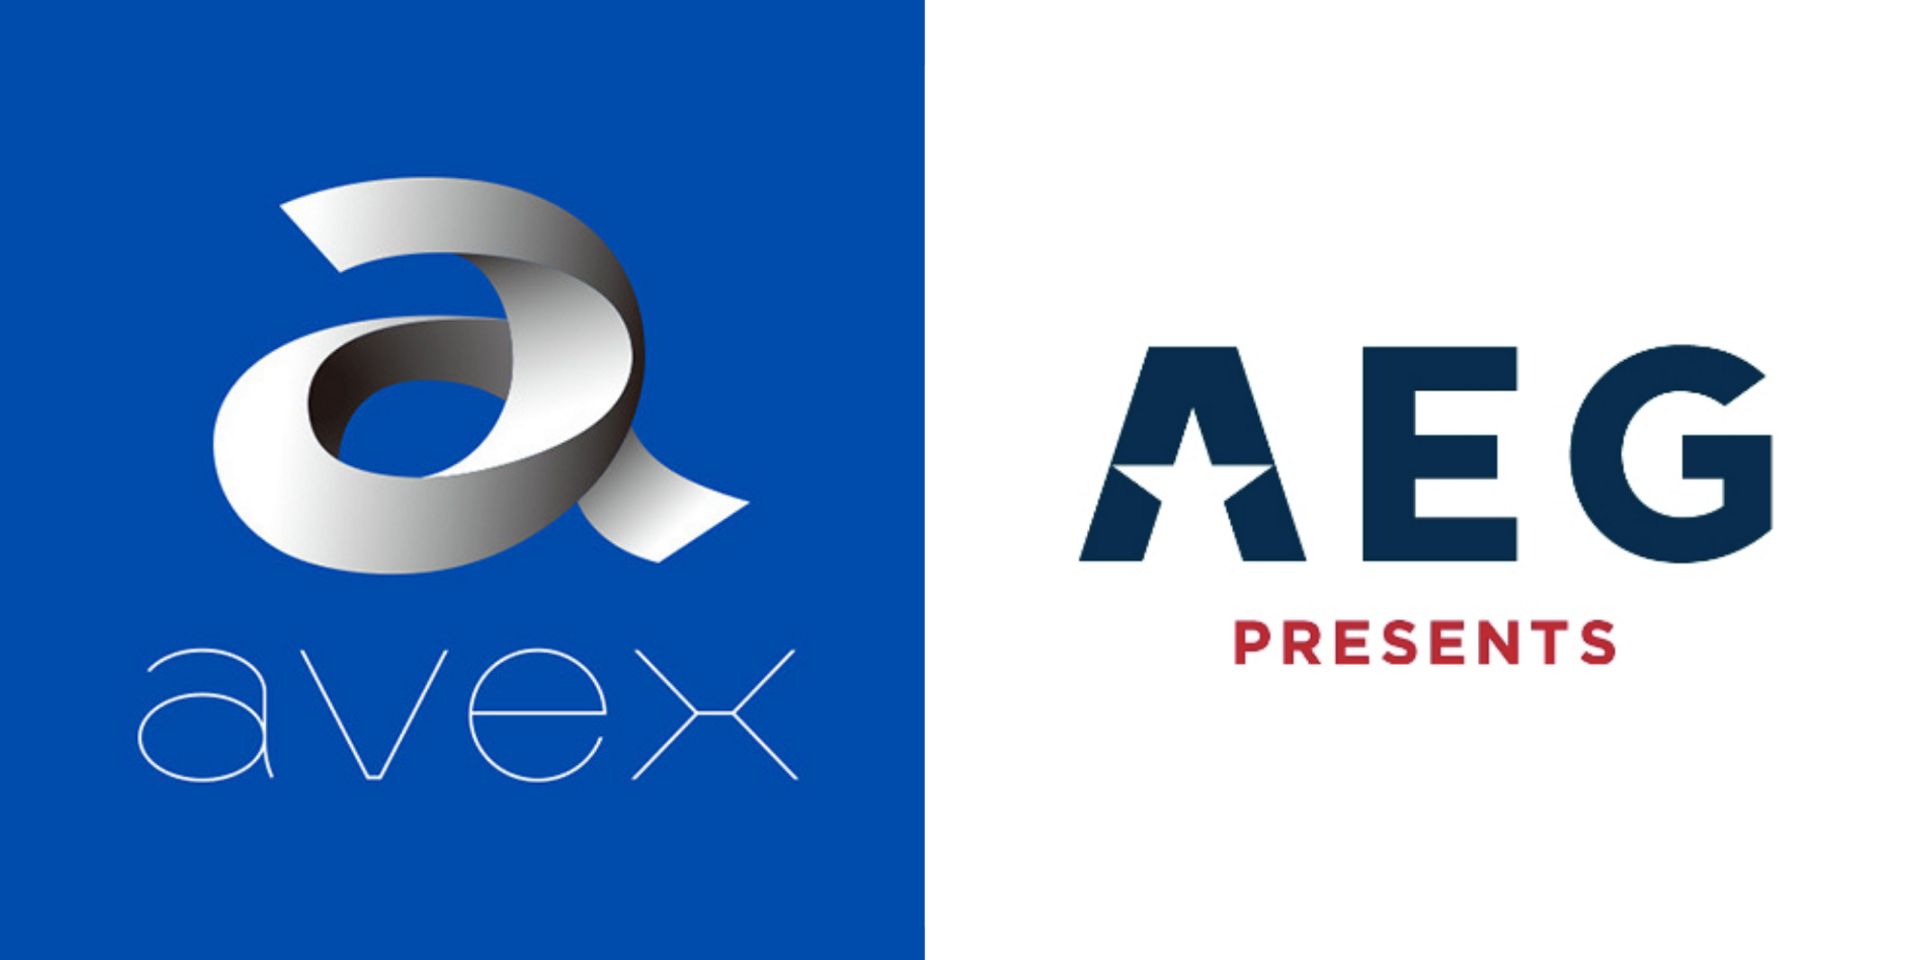 Avex Entertainment partners with concert promoter AEG to bring Japanese music to international fans